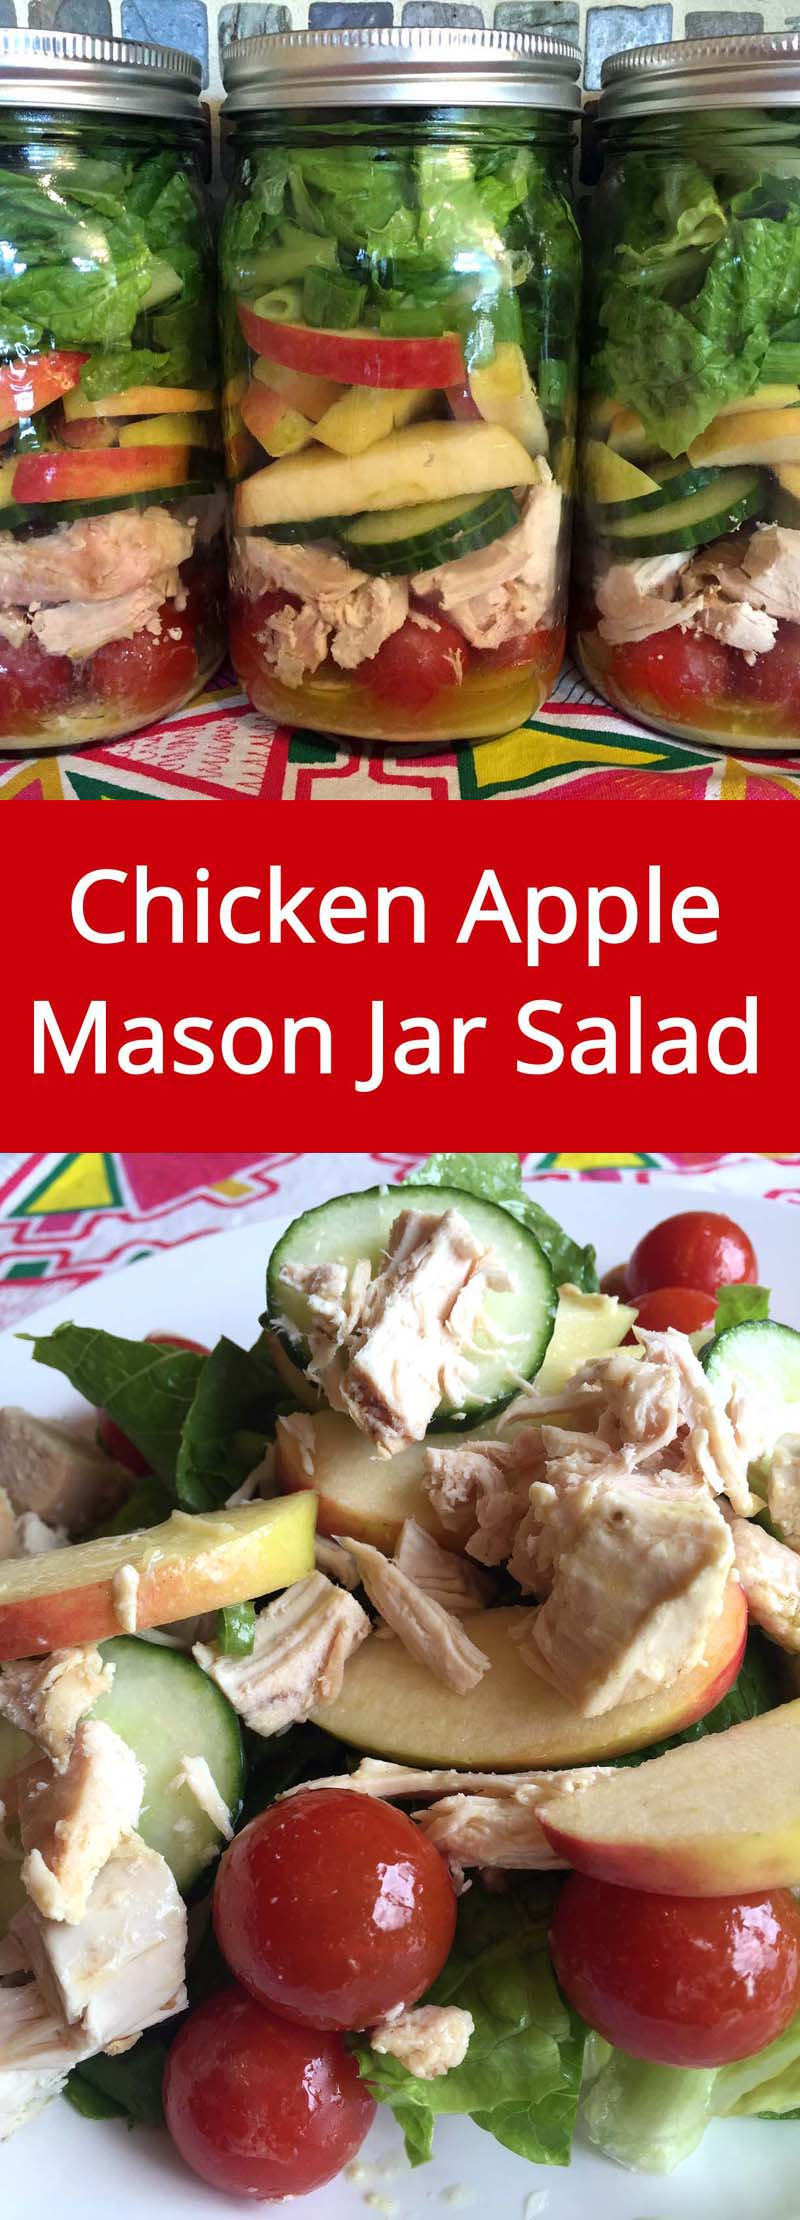 Chicken Apple Mason Jar Salad - make a week's worth of healthy lunches in 20 minutes or less! | MelanieCooks.com